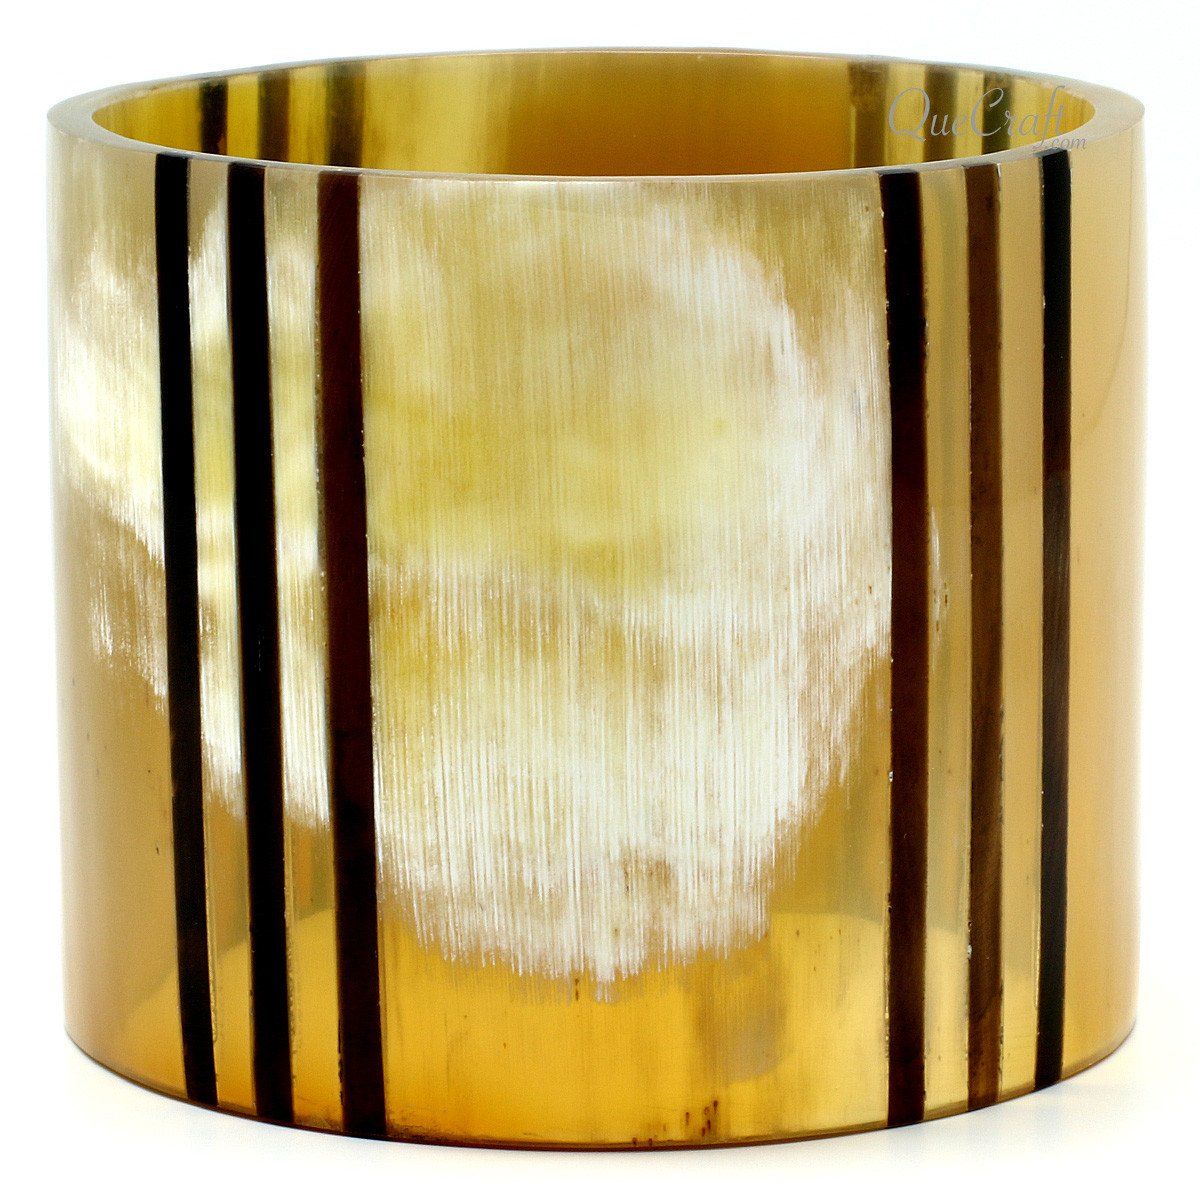 Horn Bangle Bracelet #10238 - HORN.JEWELRY by QueCraft